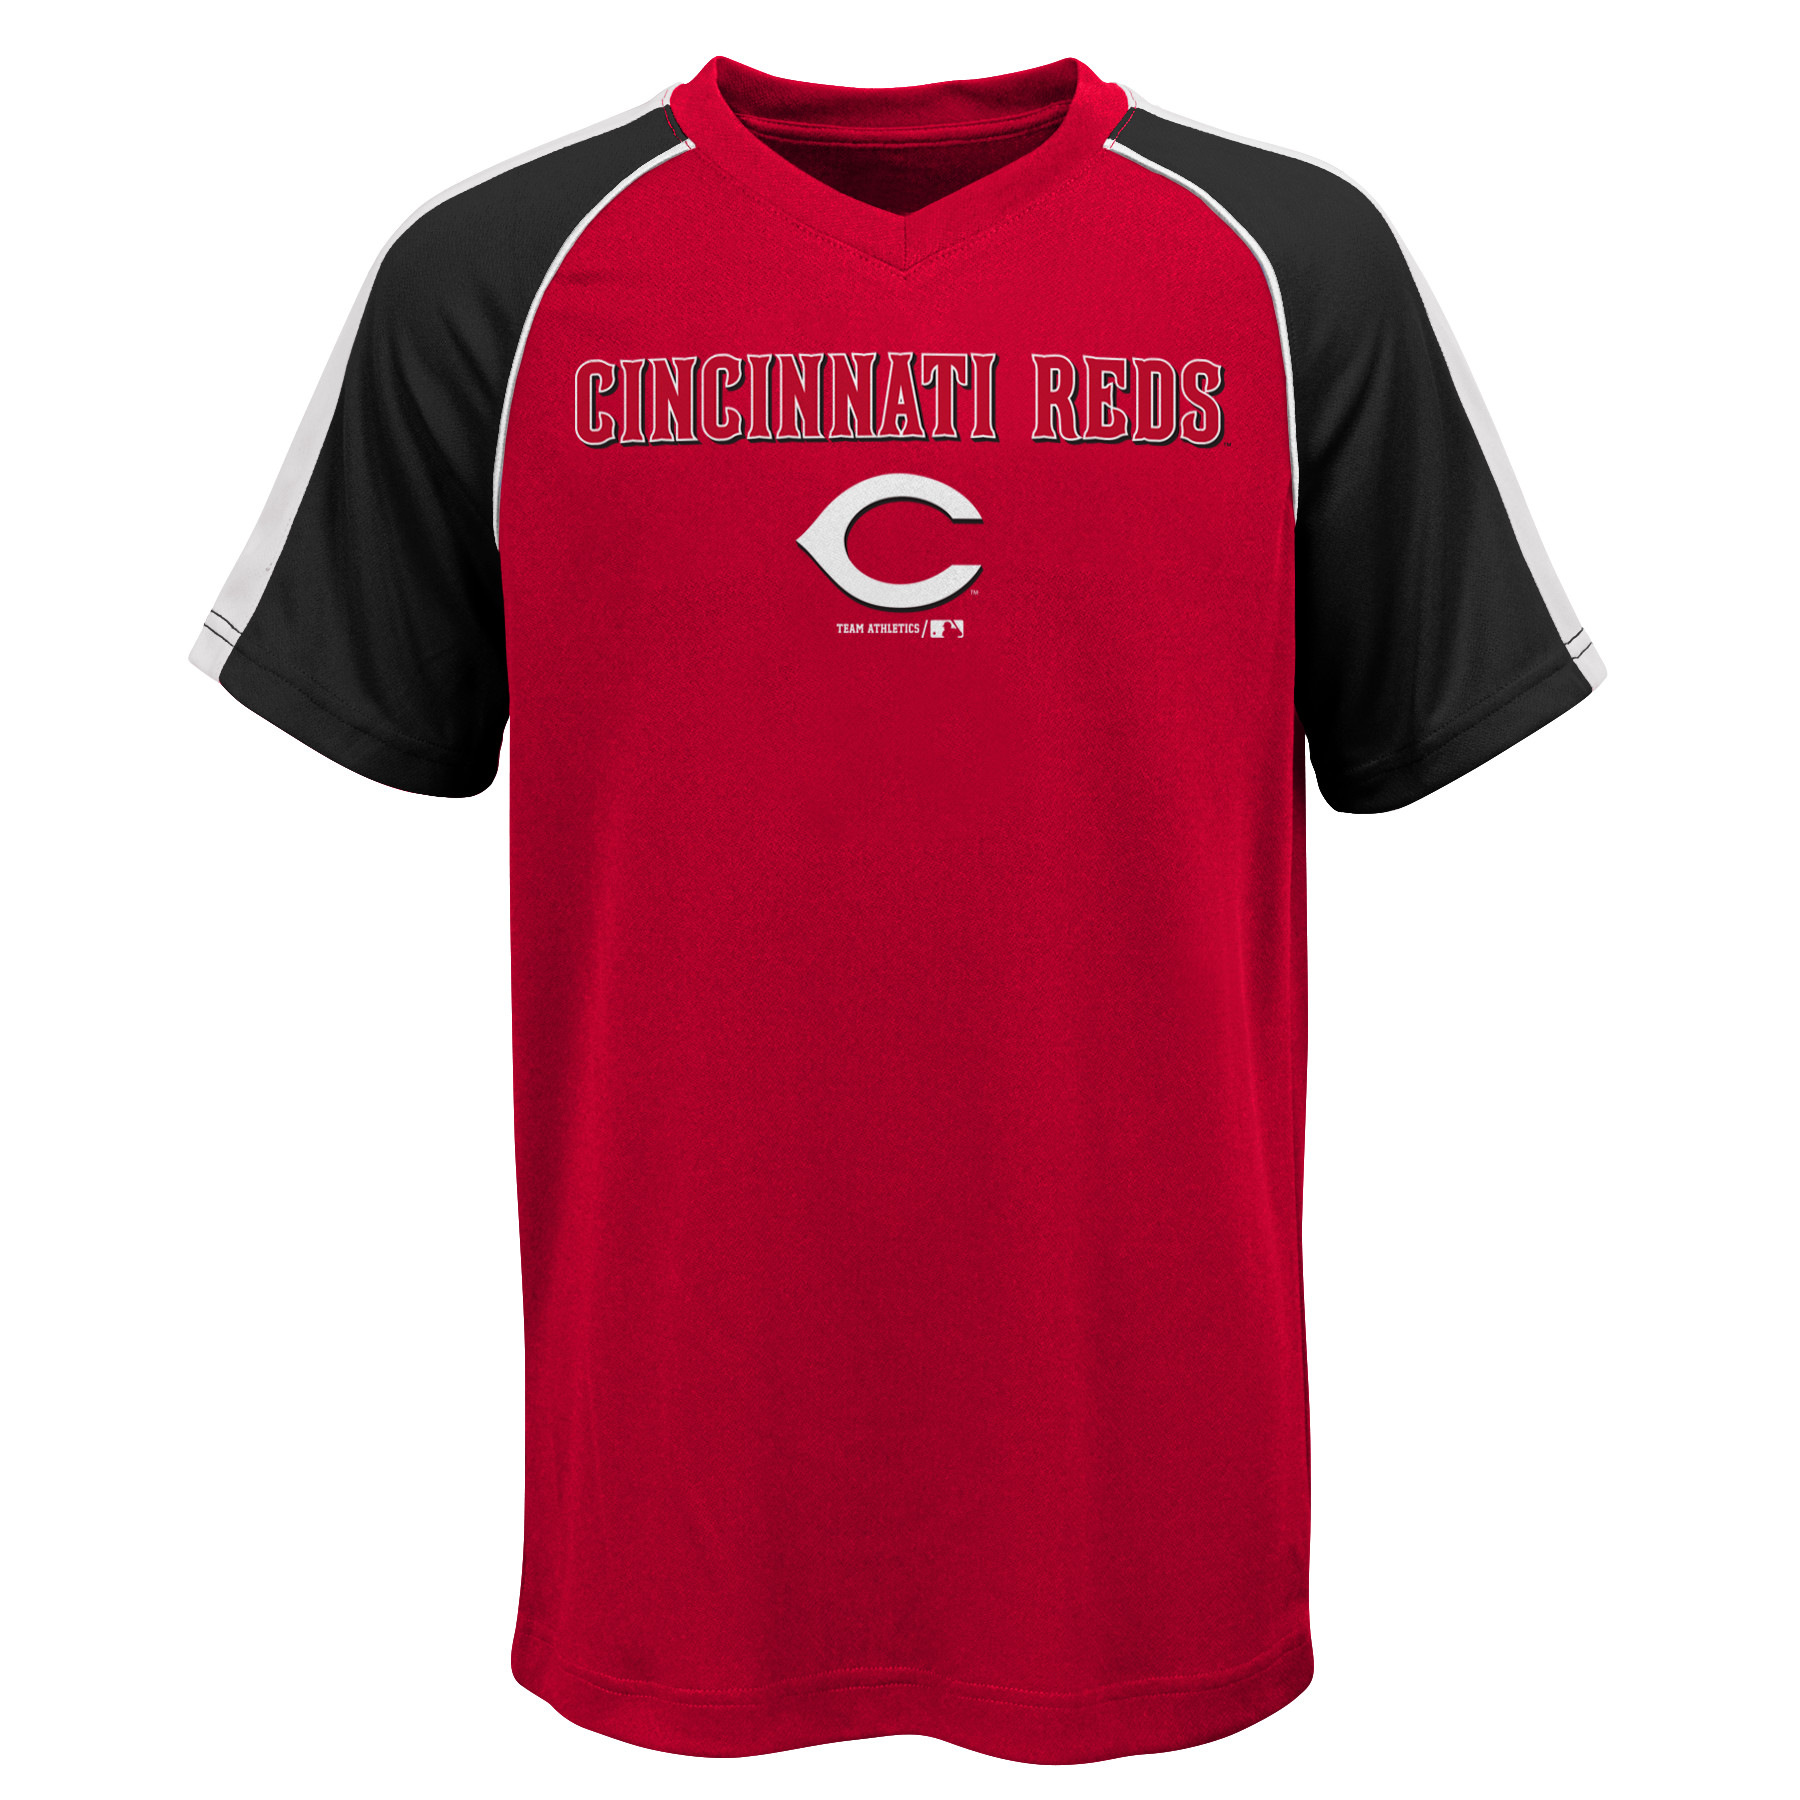 MLB Cincinnati REDS TEE Short Sleeve Boys Fashion Jersey Tee 100% Polyester Pin Dot Mesh Jersey Team Tee 4-18